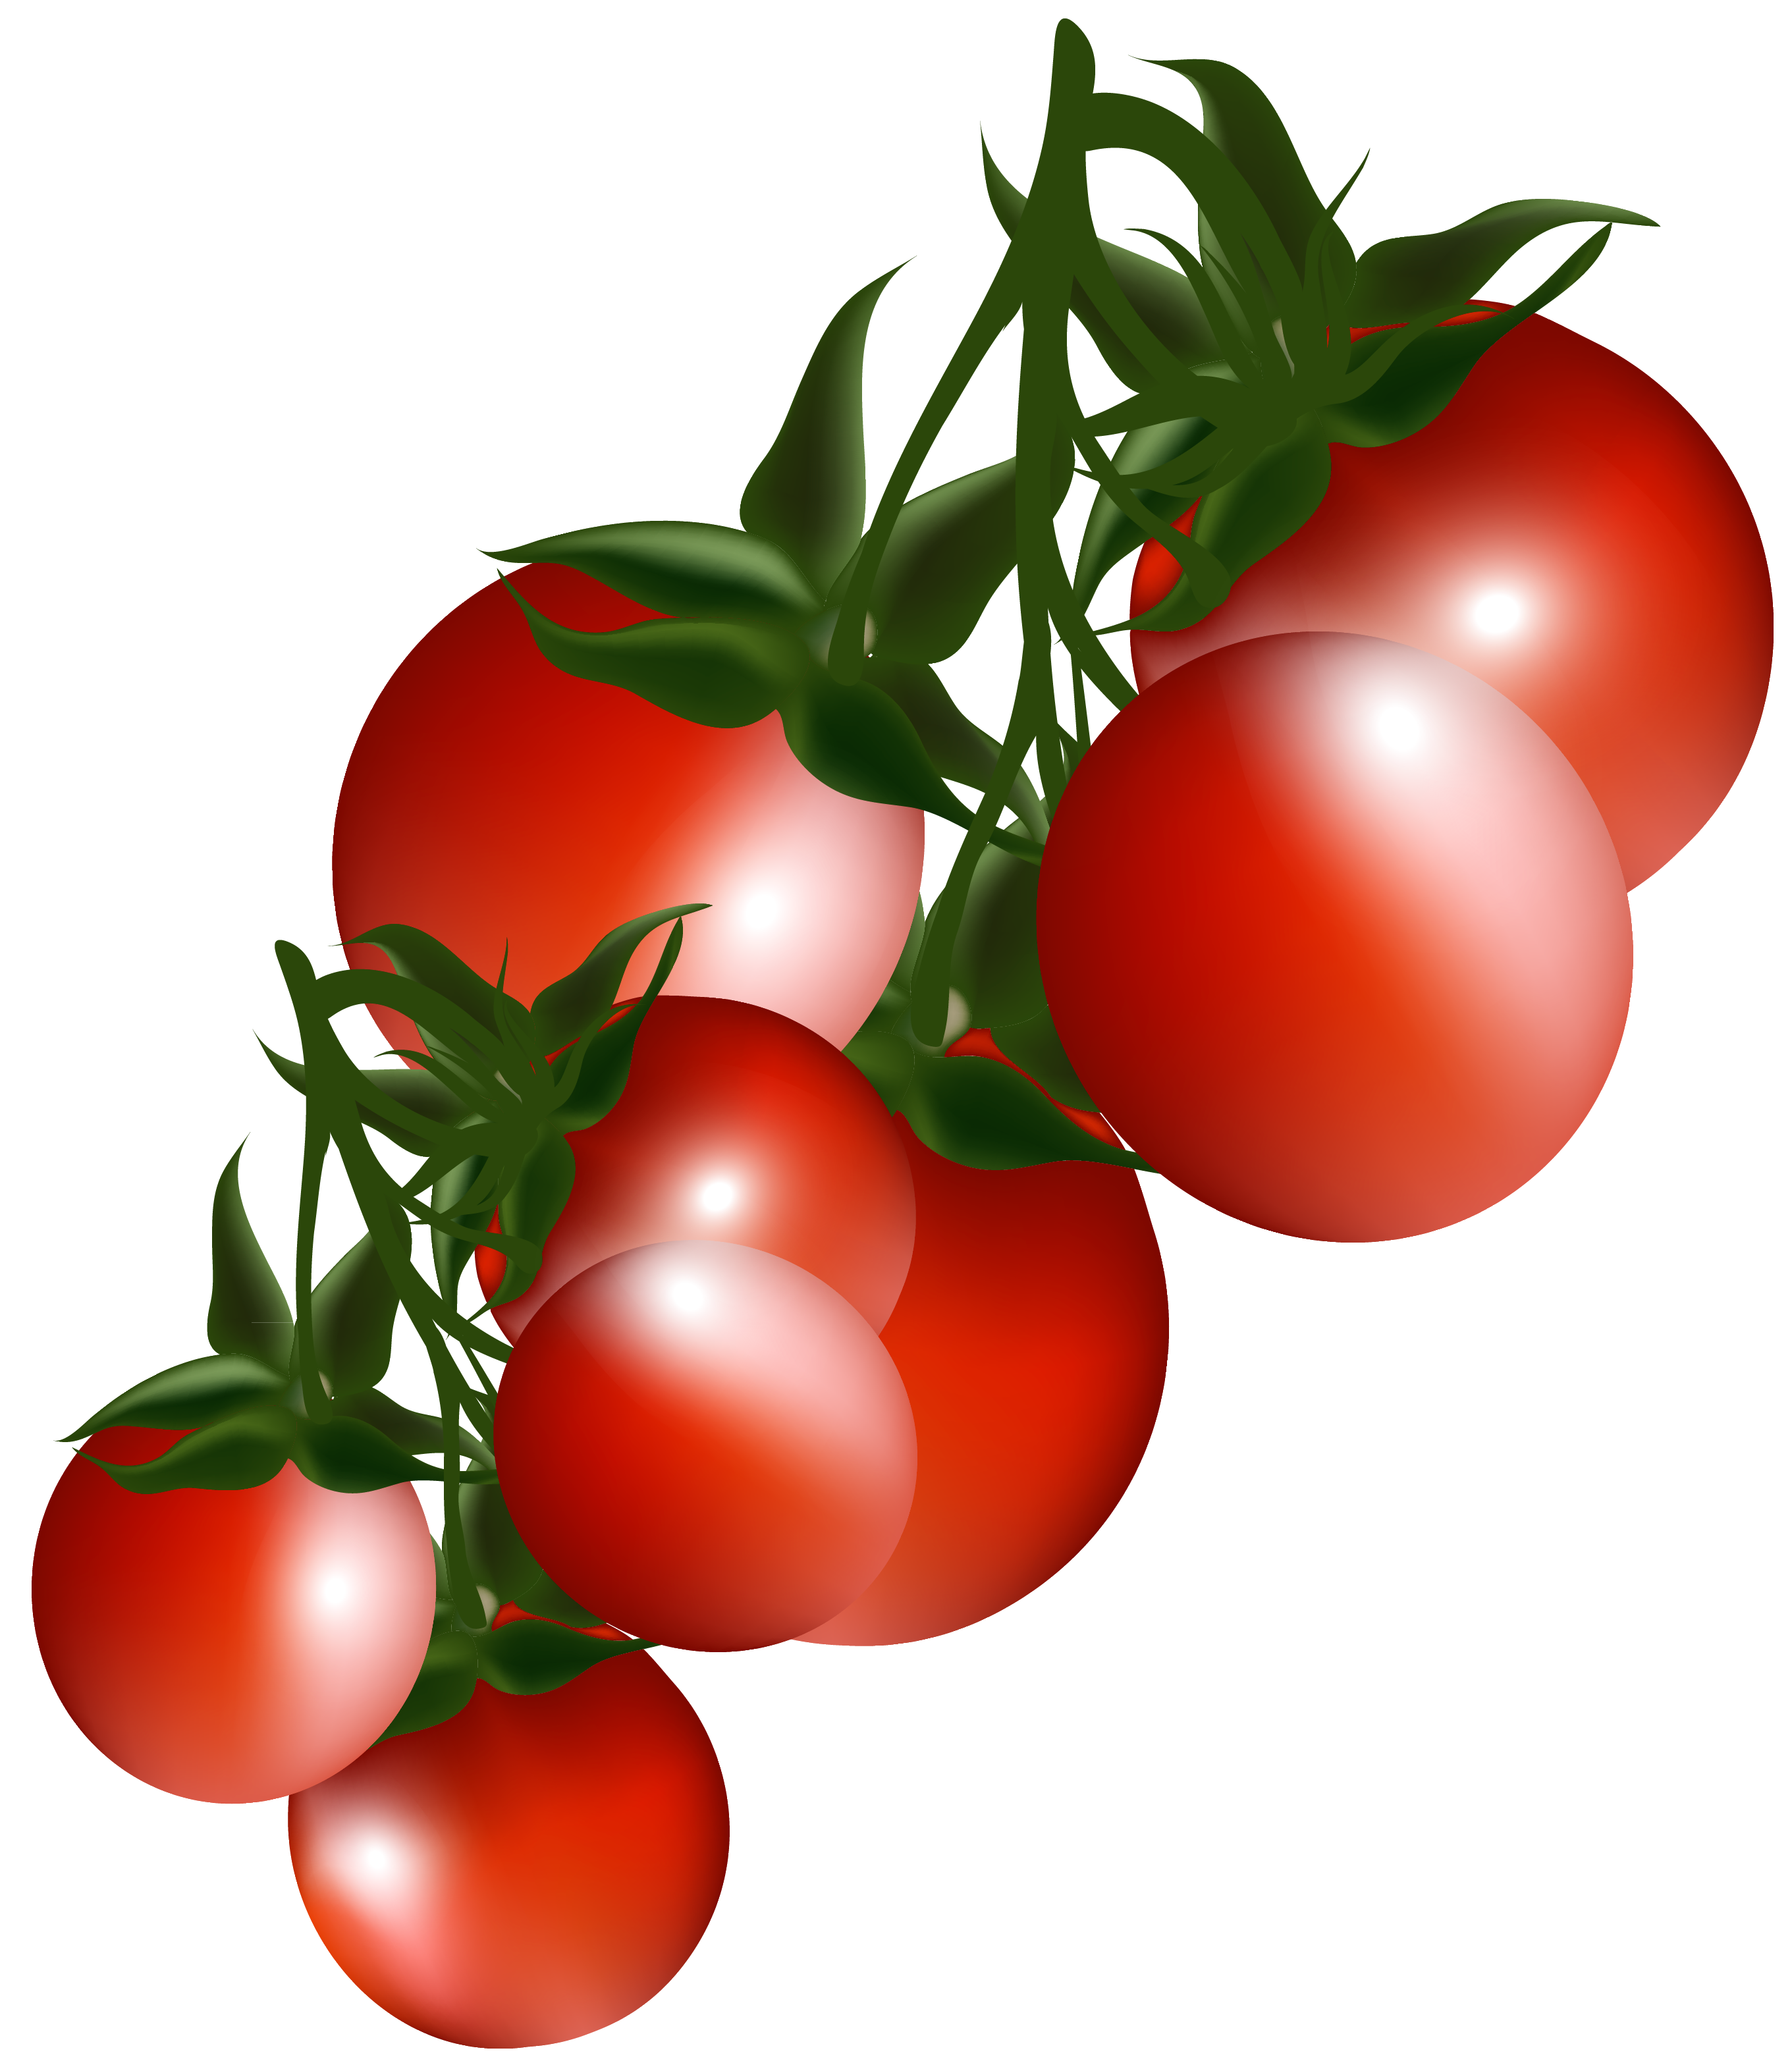 Tomatoes clipart printable. Tomato free images